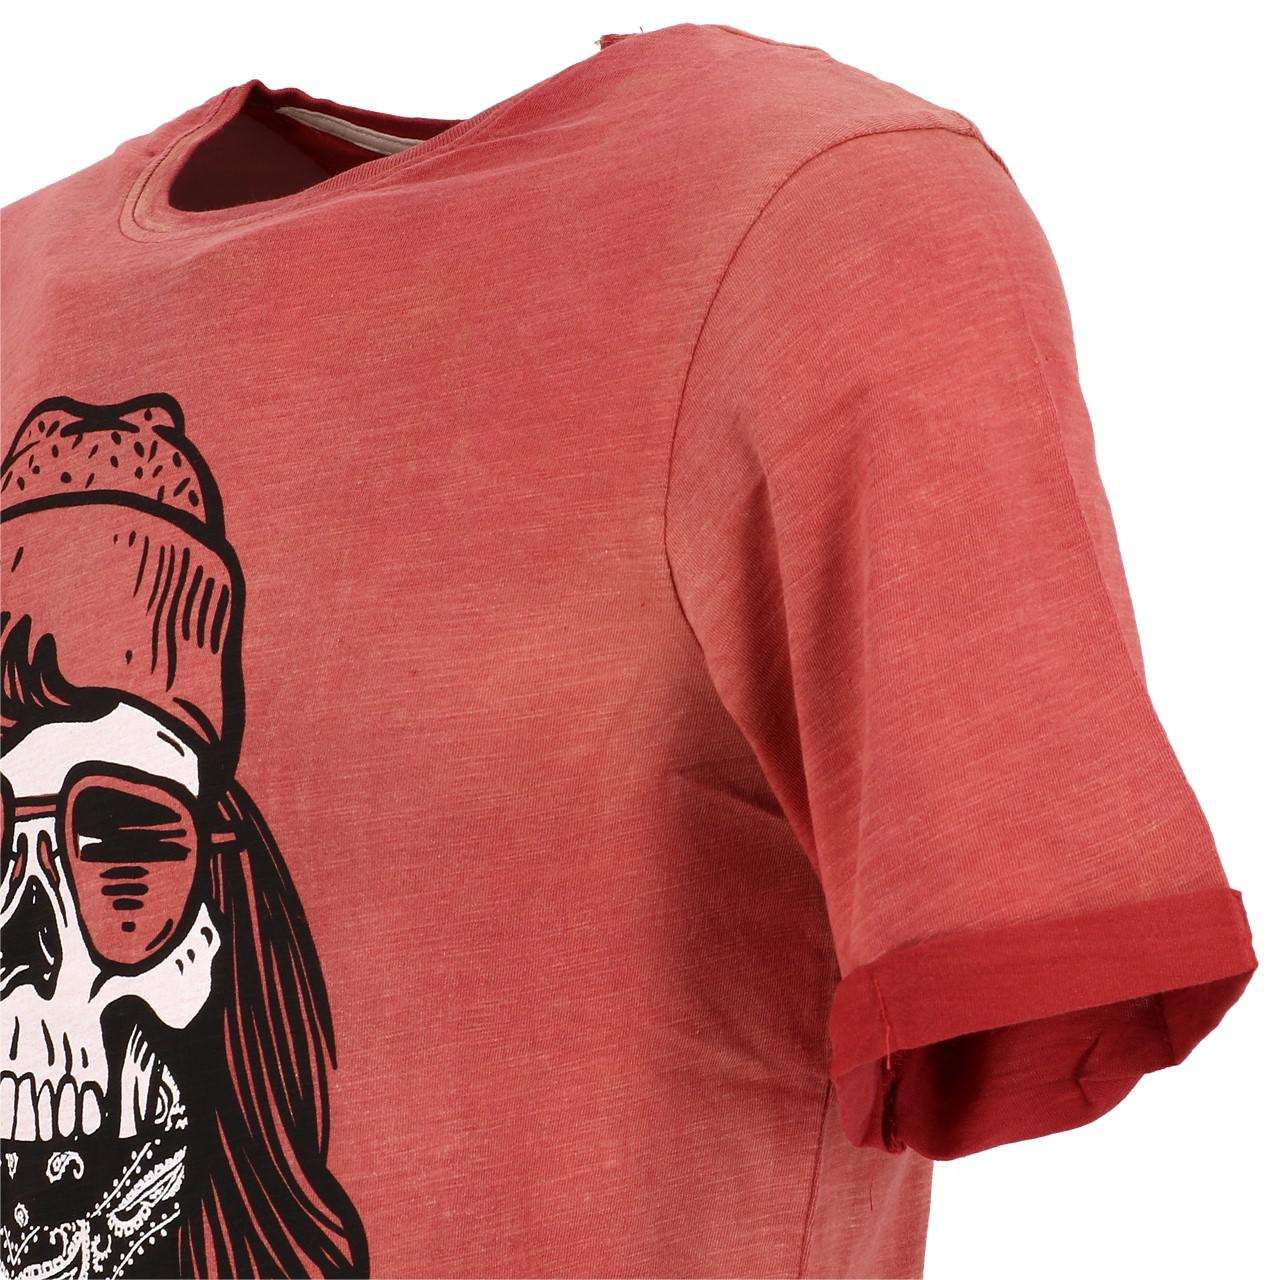 Short-Sleeve-T-Shirt-Jack-and-Jones-Craps-Brick-Red-Mc-Tee-Red-28384-Does-Not thumbnail 3